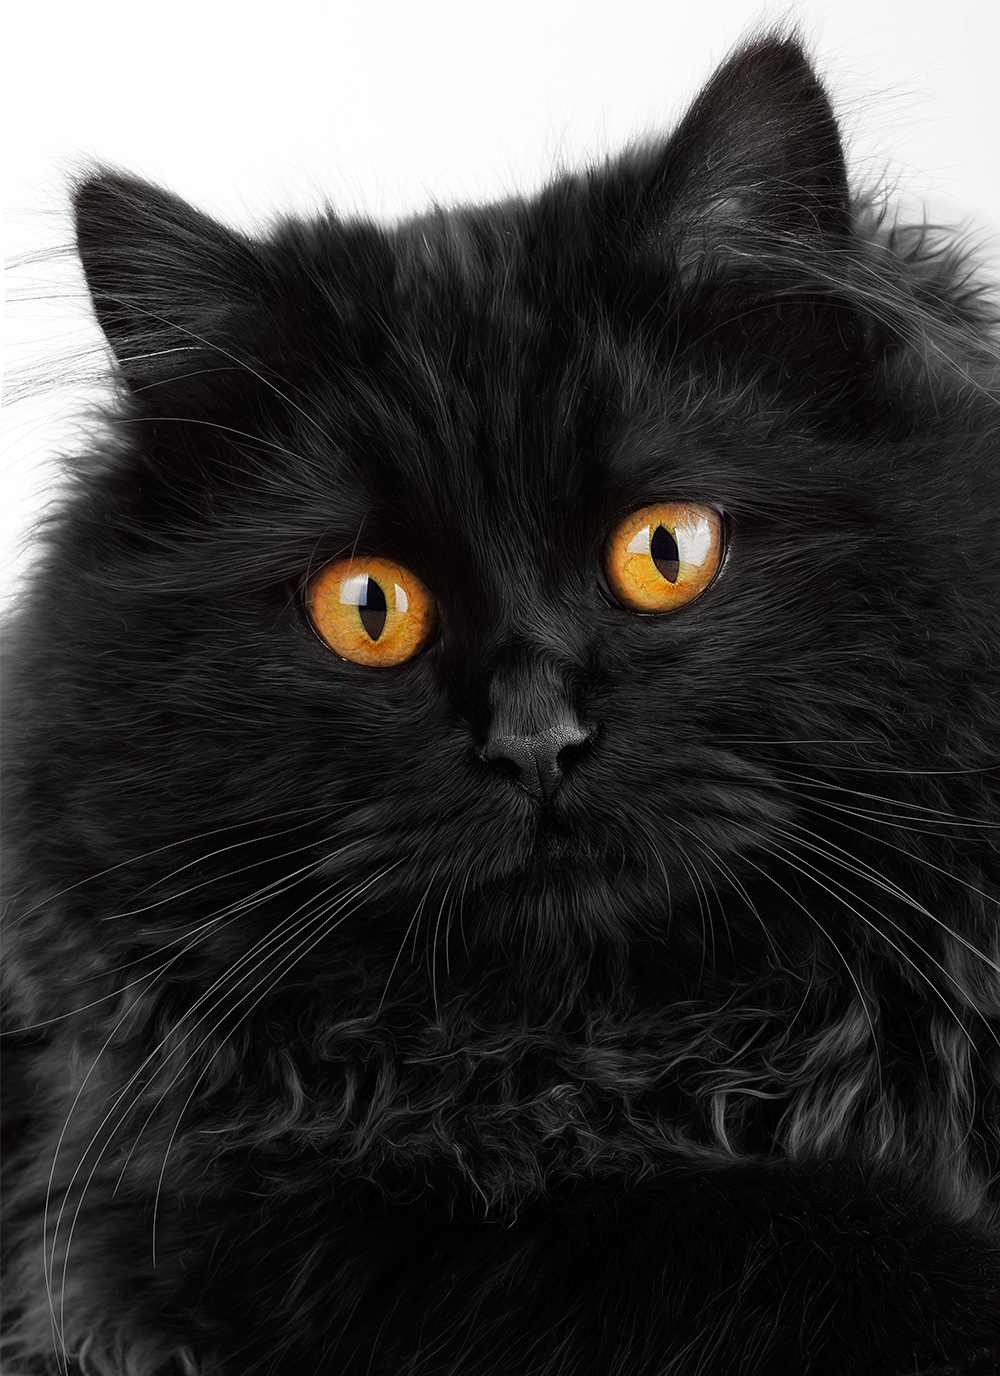 30 Very Beautiful Black Persian Cat Images And Pictures